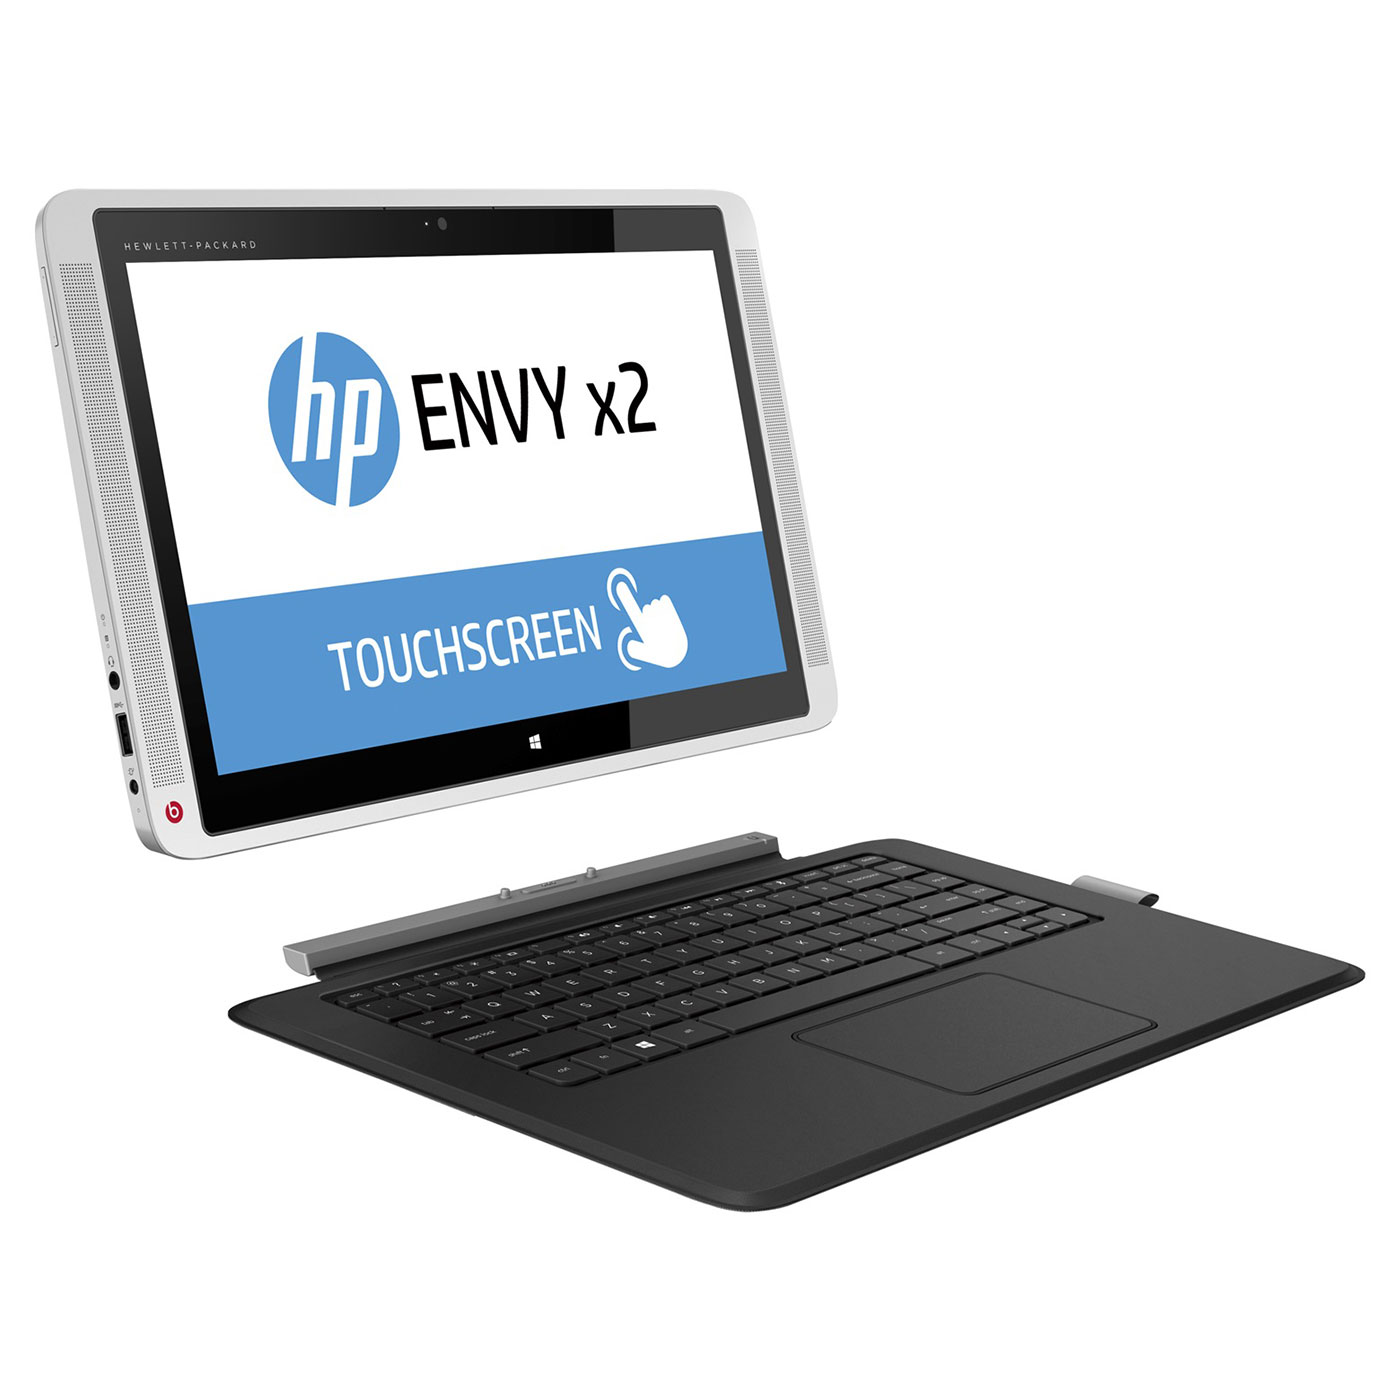 HP ENVY x2 13-j001nf Intel Core M-5Y10 4 Go SSD 128 Go 13.3